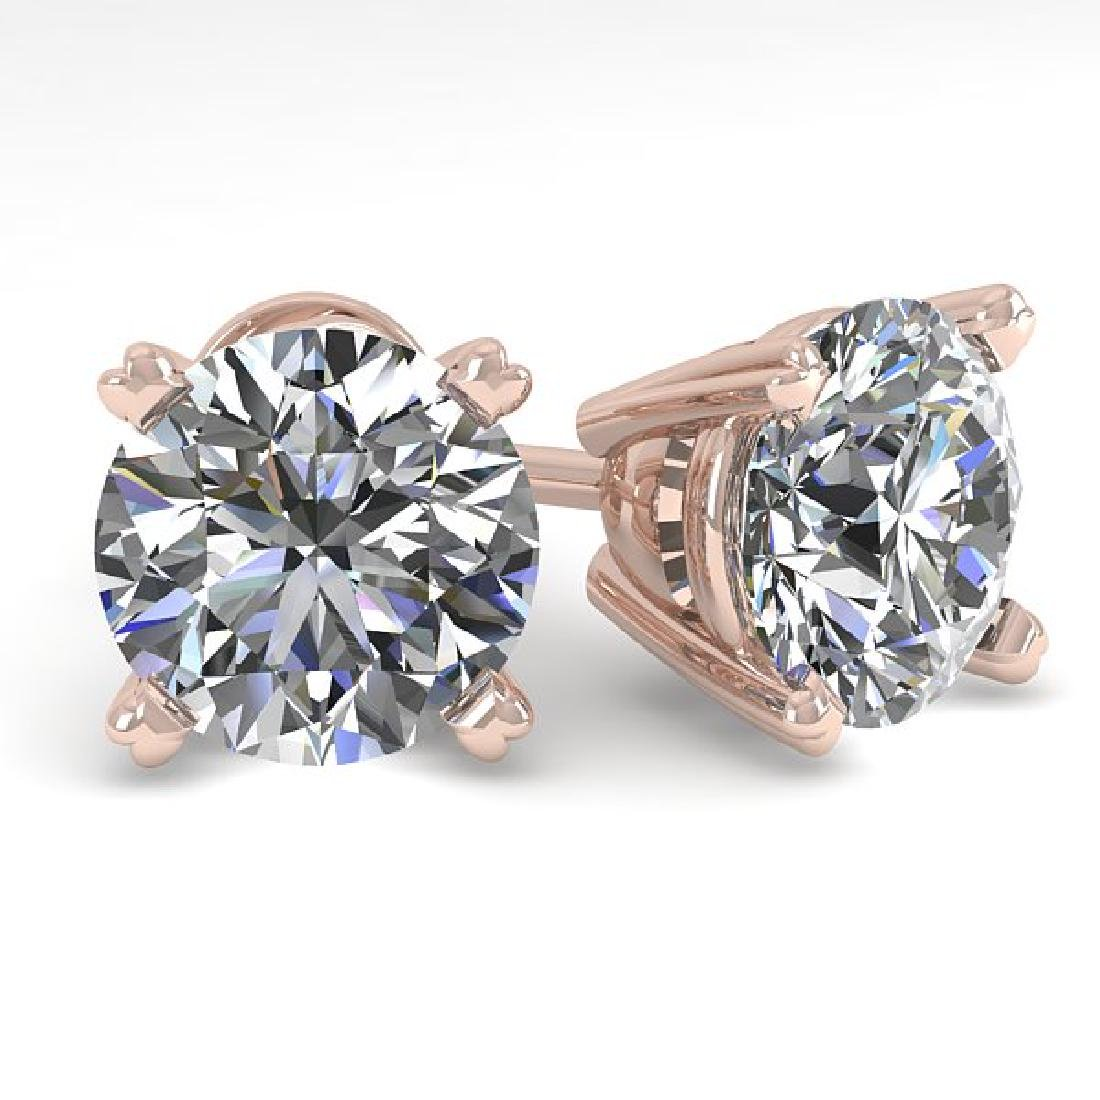 2.53 CTW Certified VS/SI Diamond Stud Earrings 18K Rose